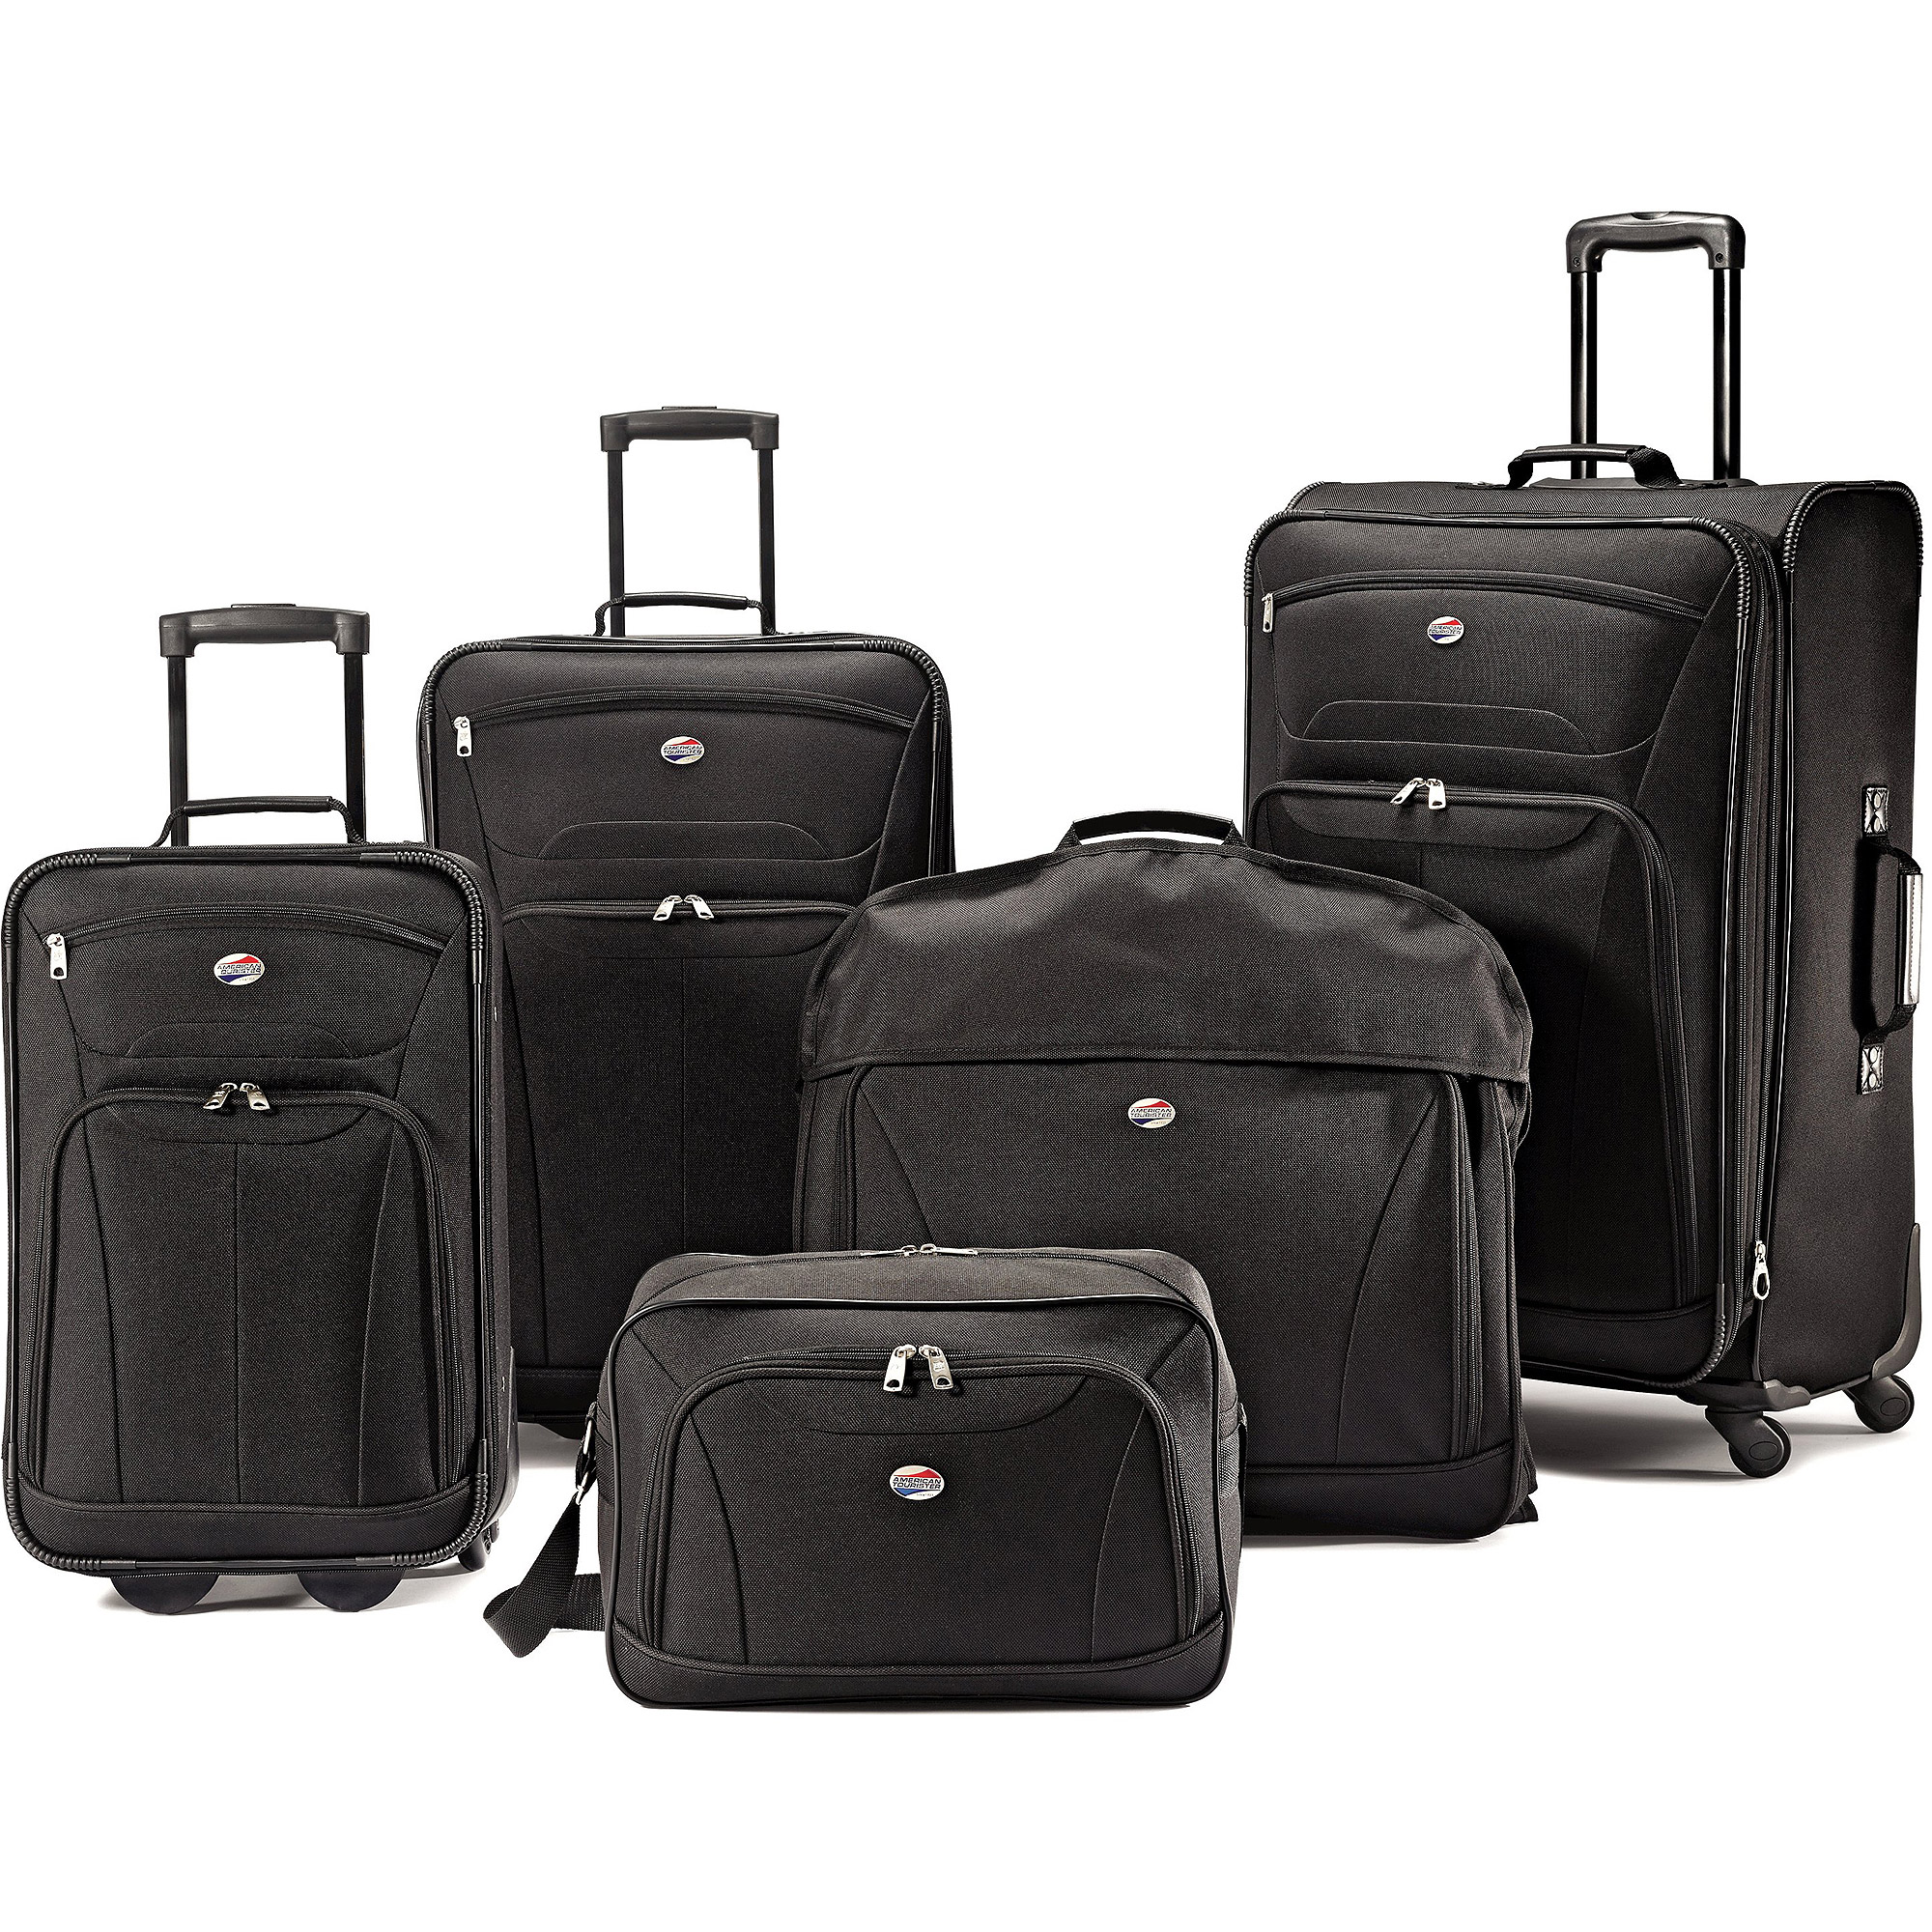 American Tourister 5-Piece Luggage Set - Walmart.com